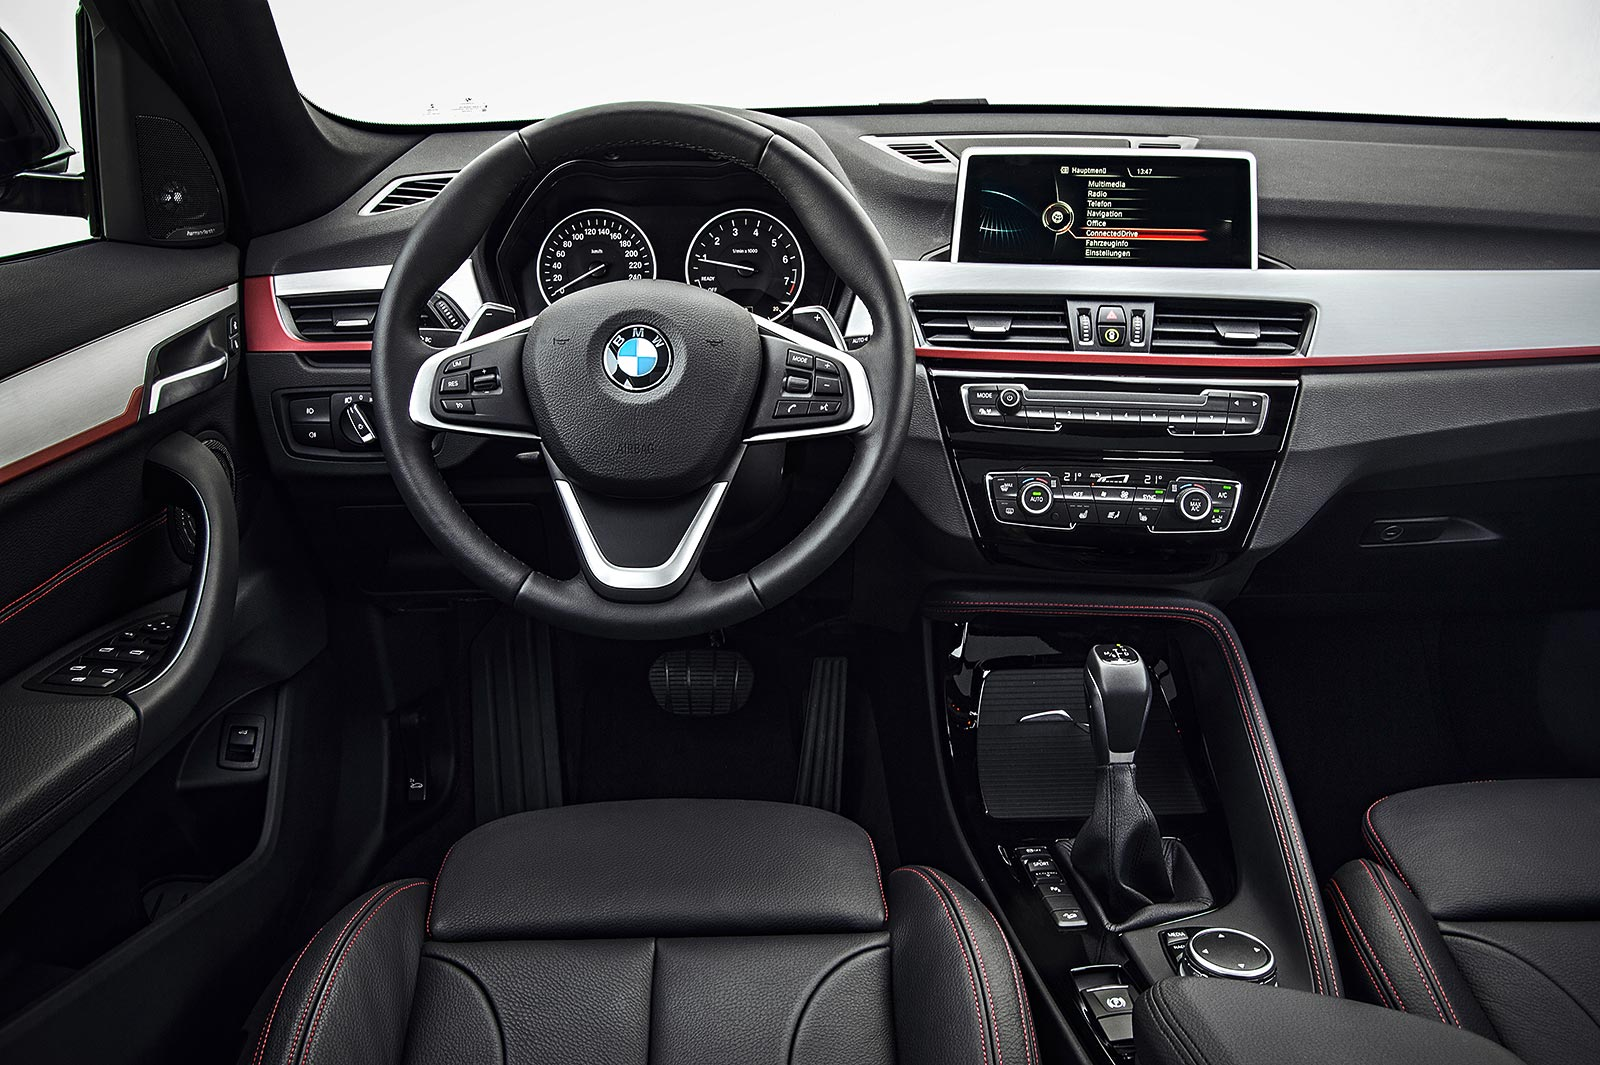 foto bmw x1 xdrive 25i modell sportline interieur interieurleiste aluminium l ngsschliff. Black Bedroom Furniture Sets. Home Design Ideas